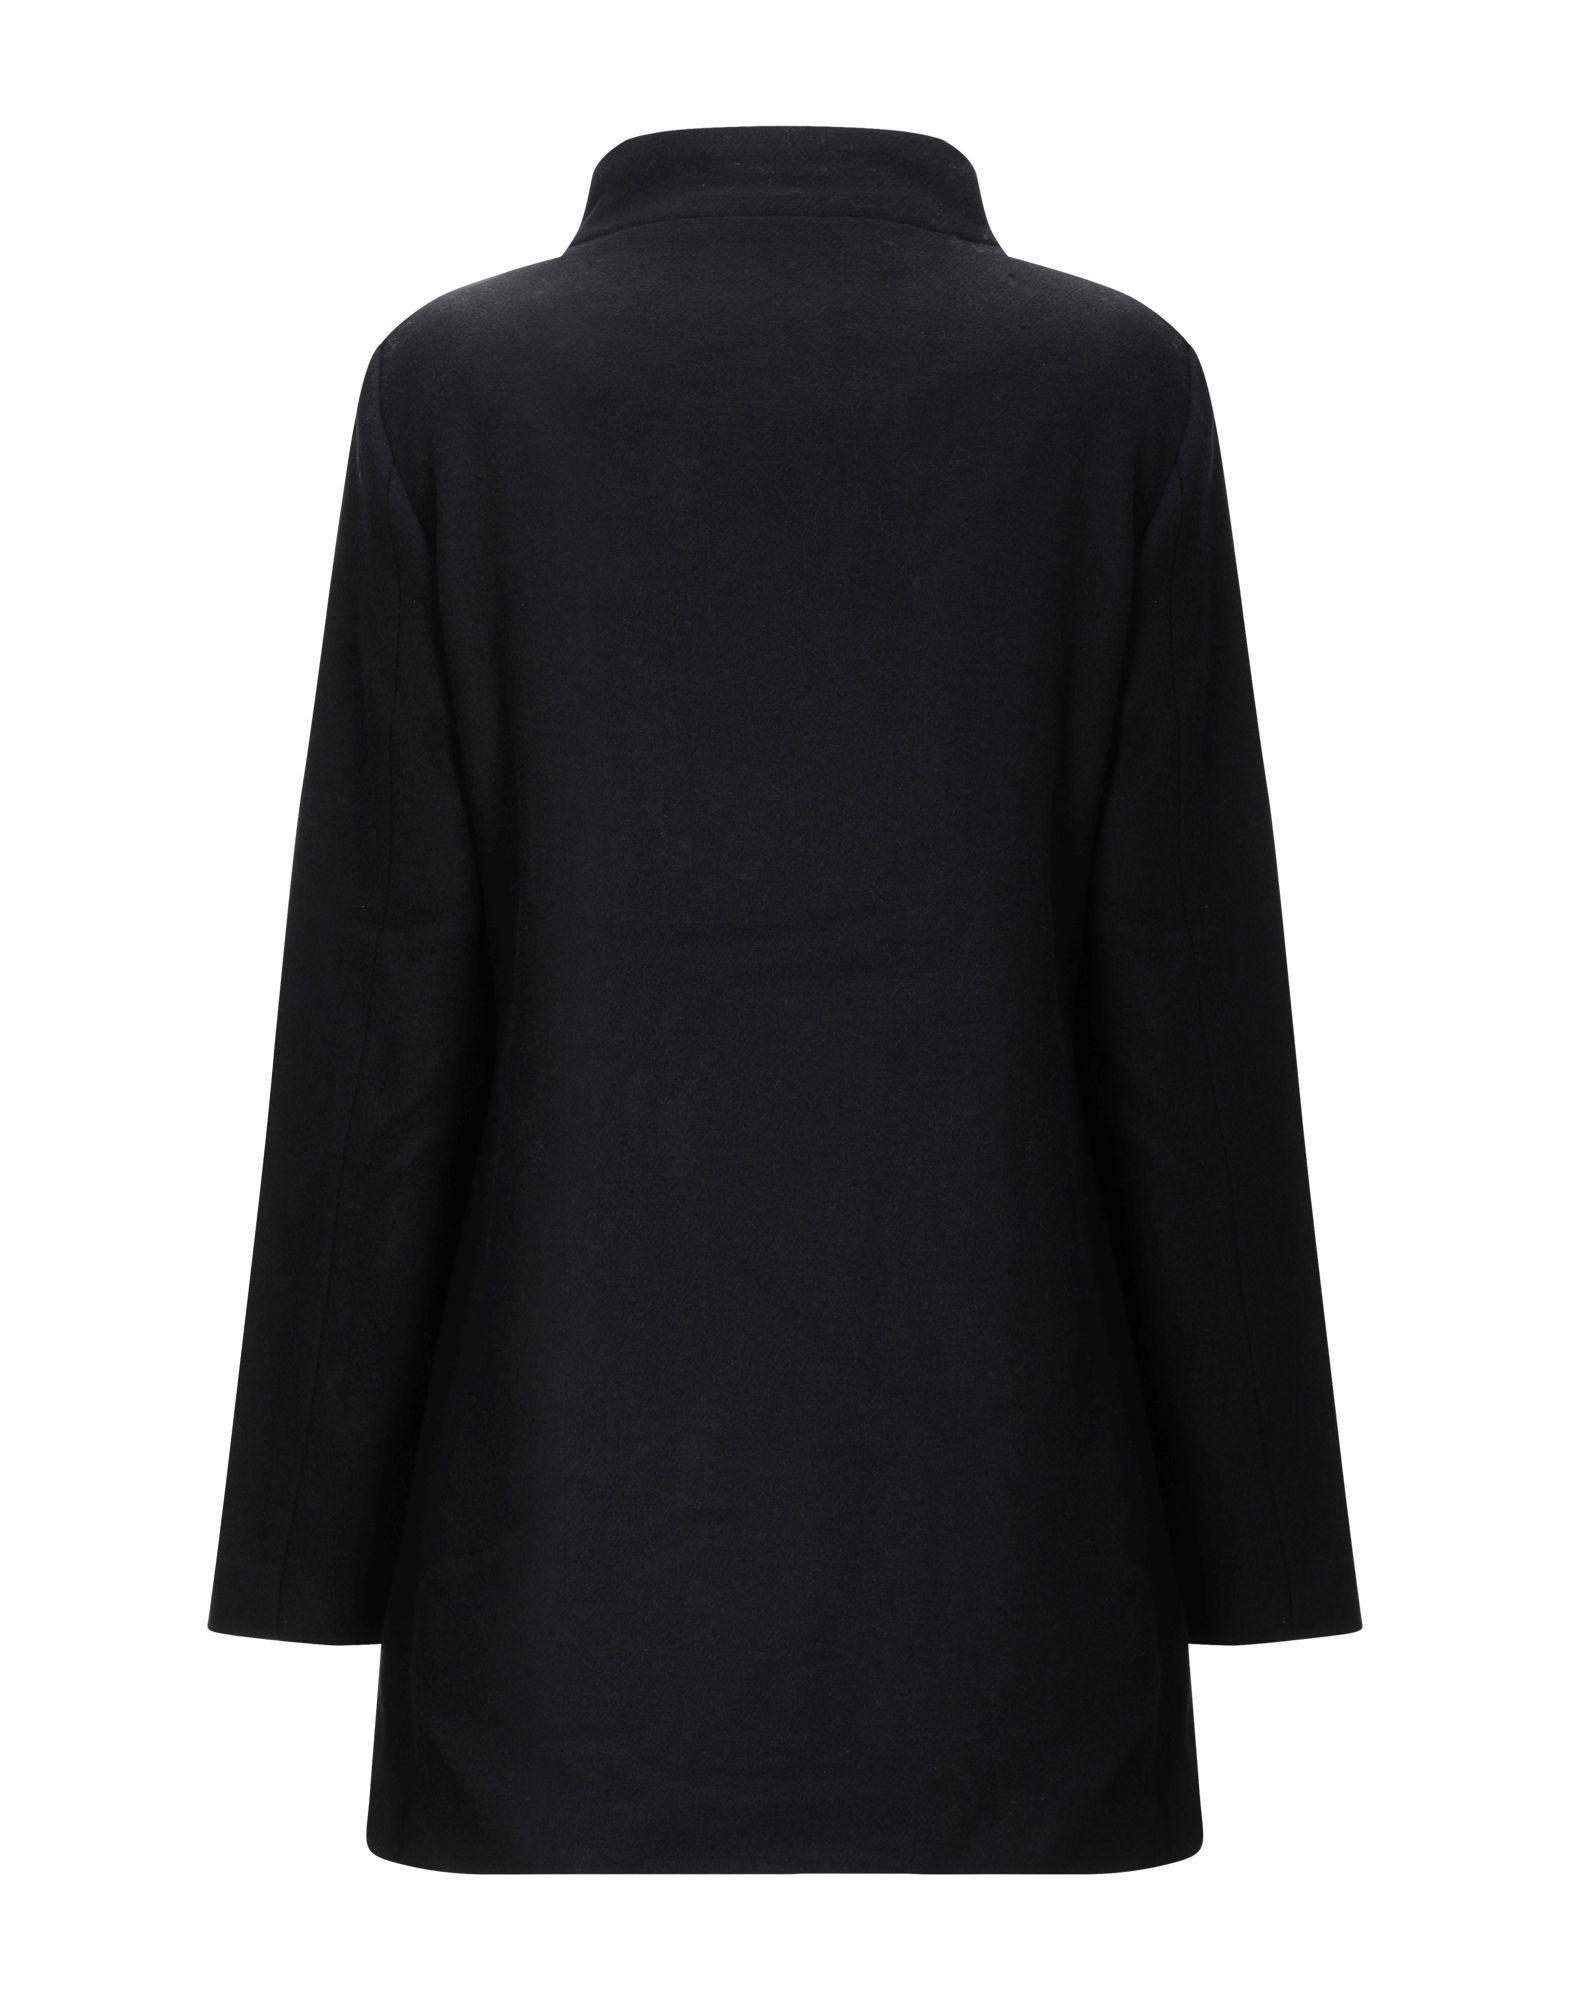 COATS & JACKETS Yes Zee By Essenza Black Woman Polyester